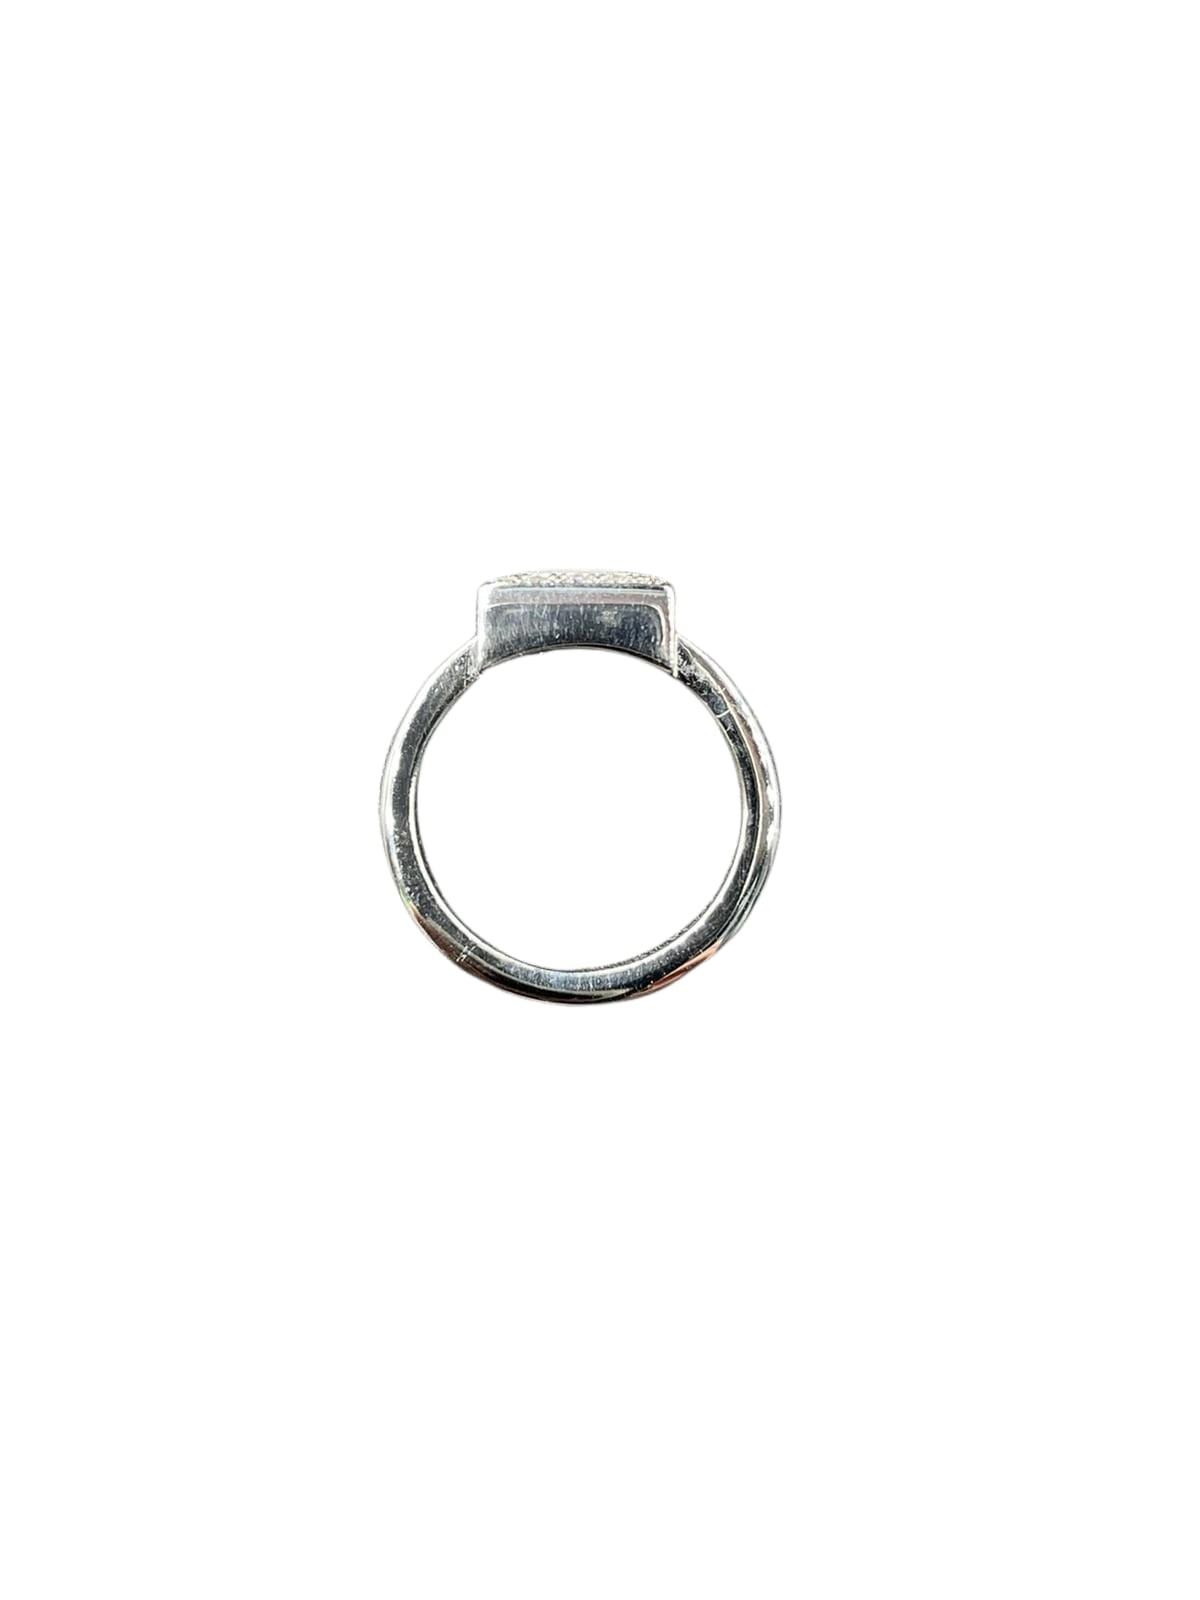 Chopard 18k white gold diamonds set square face ring, weight 11.1g and size L1/2 (RRP £3500) - Image 3 of 3